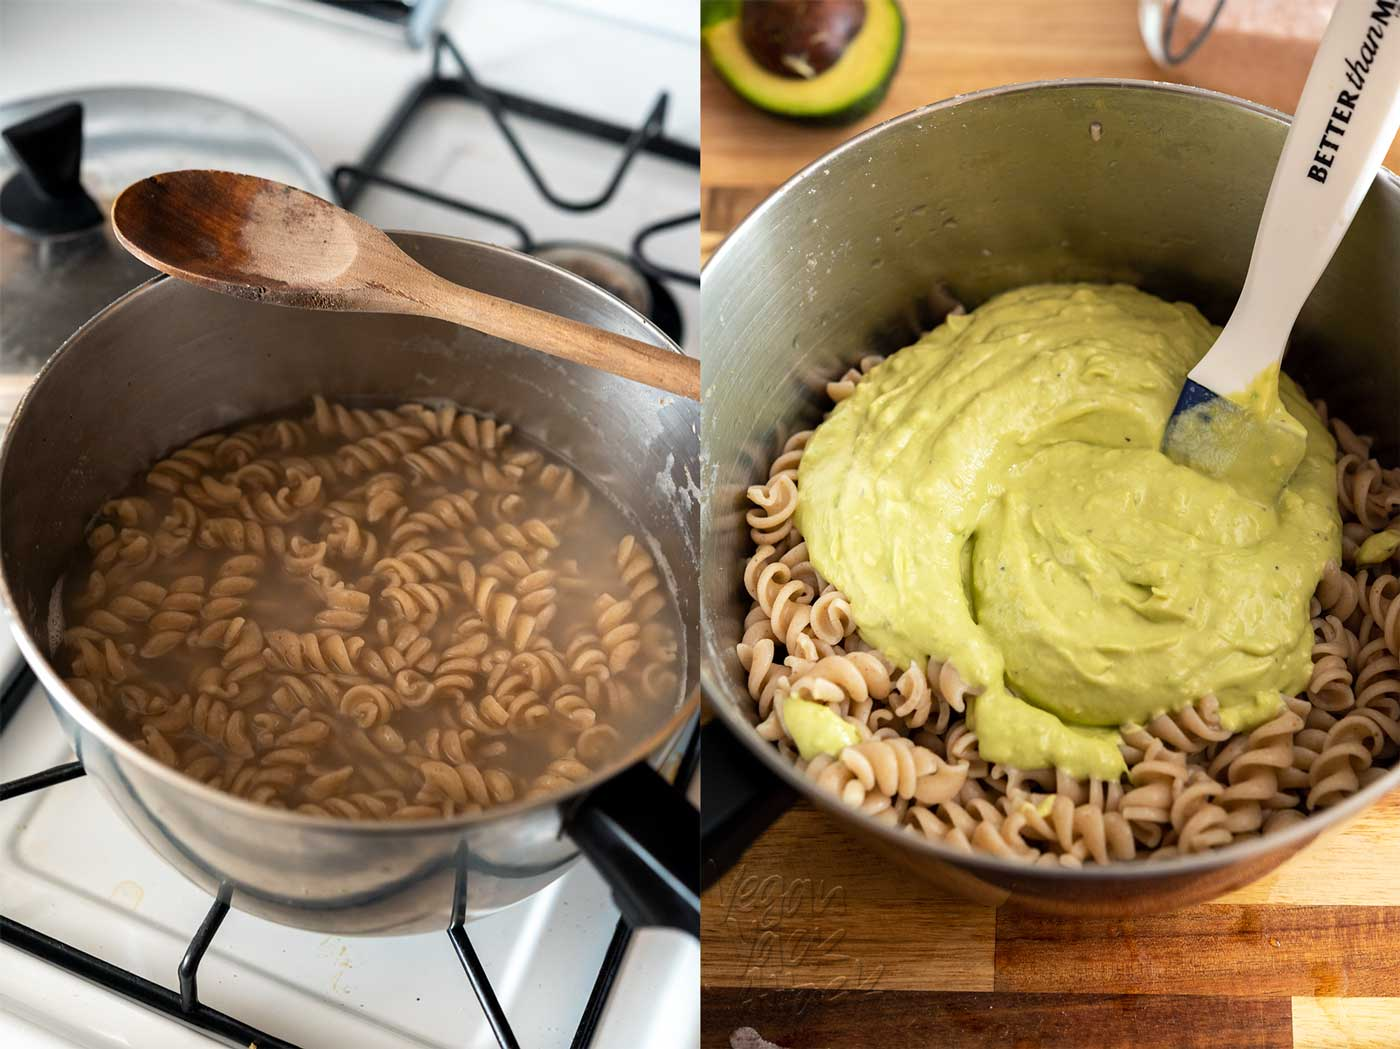 Here, creamy avocado and iron-rich tahini come together to make a delicious, super-simple, dish! This avocado tahini pasta is great for a quick dinner, or make-ahead lunch. Vegan, gluten-free, soy-free, and nut-free.